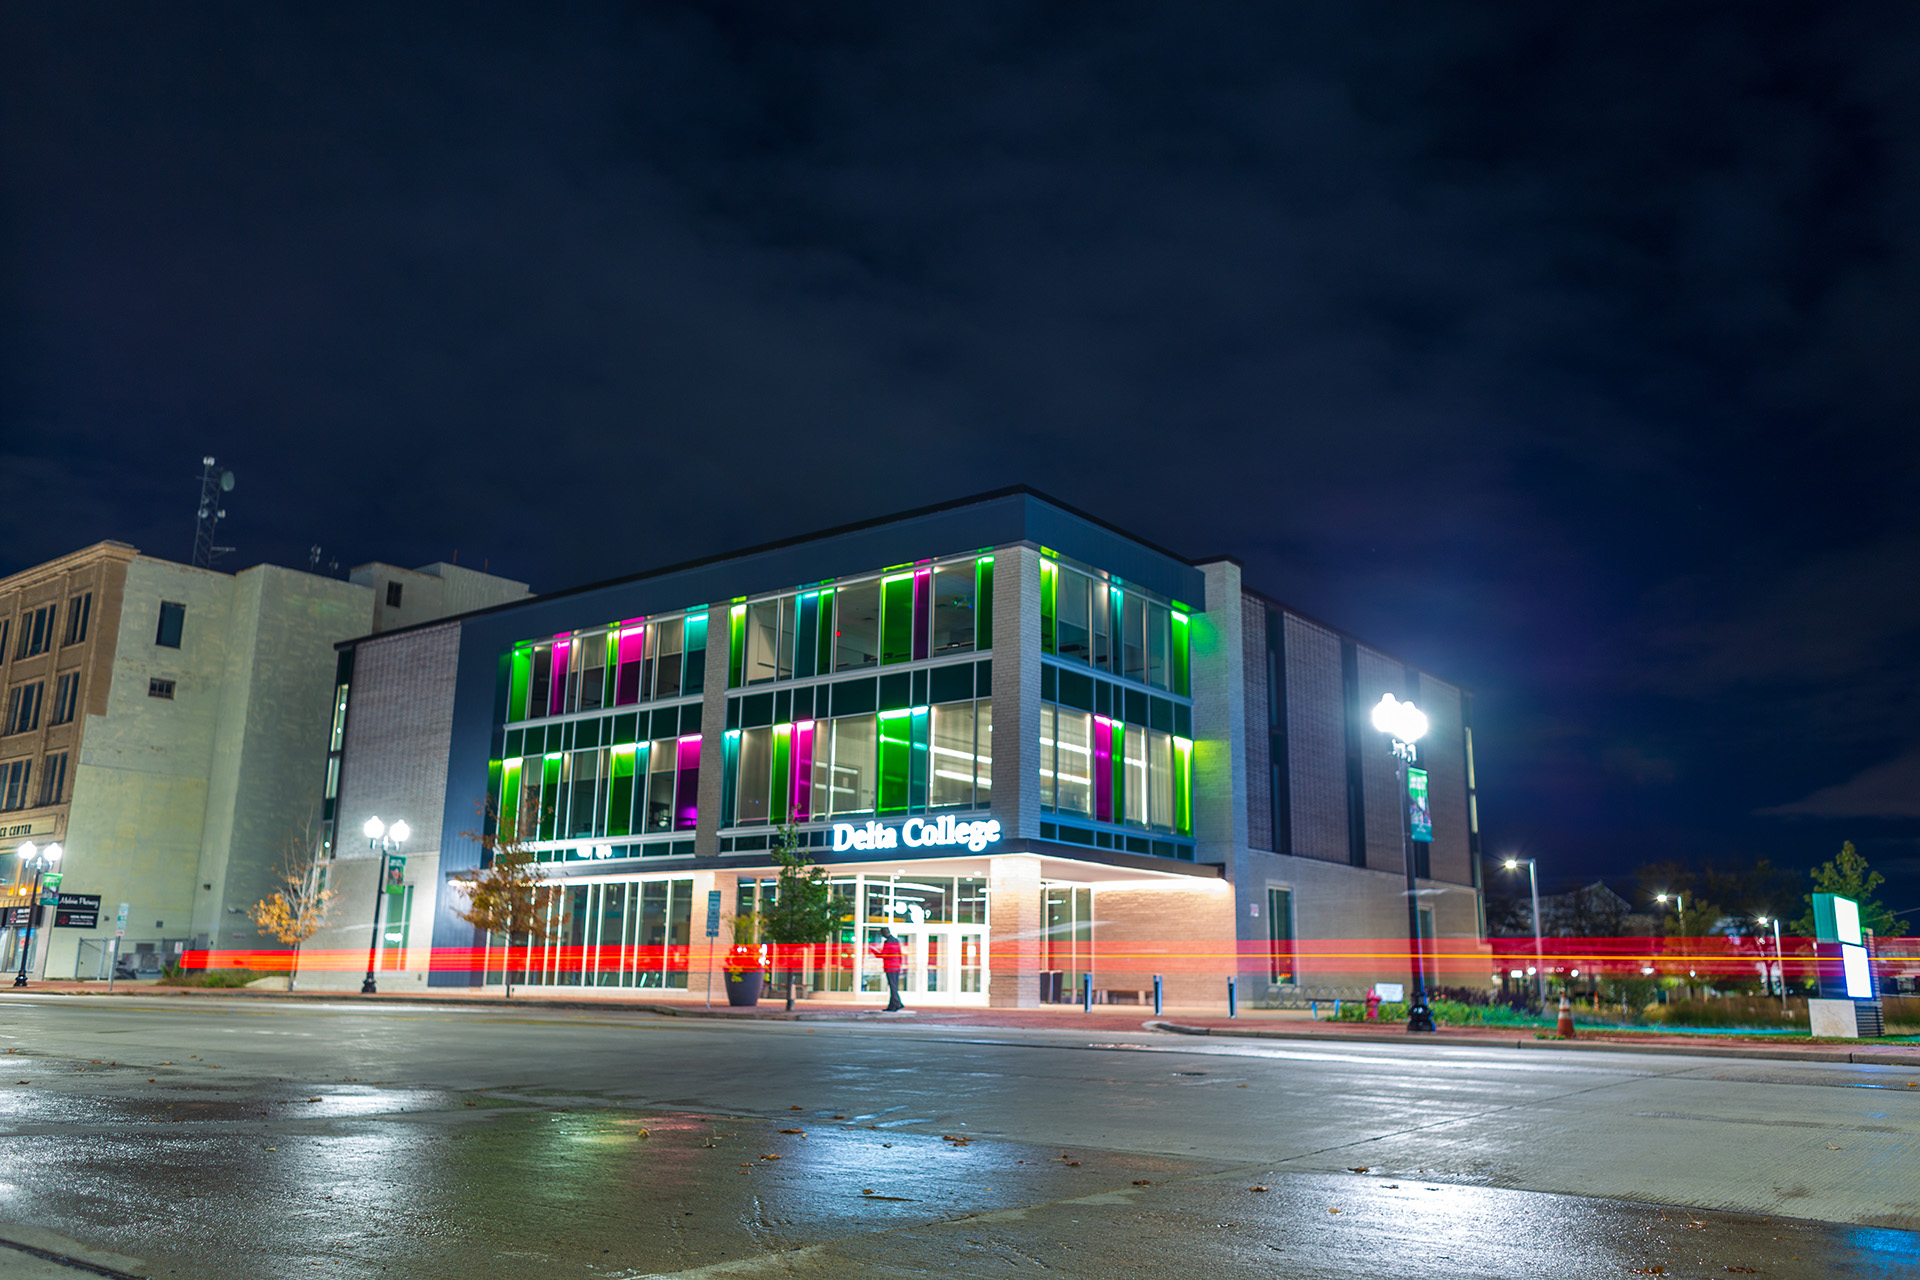 The Downtown Saginaw Center is a sight to see at night.